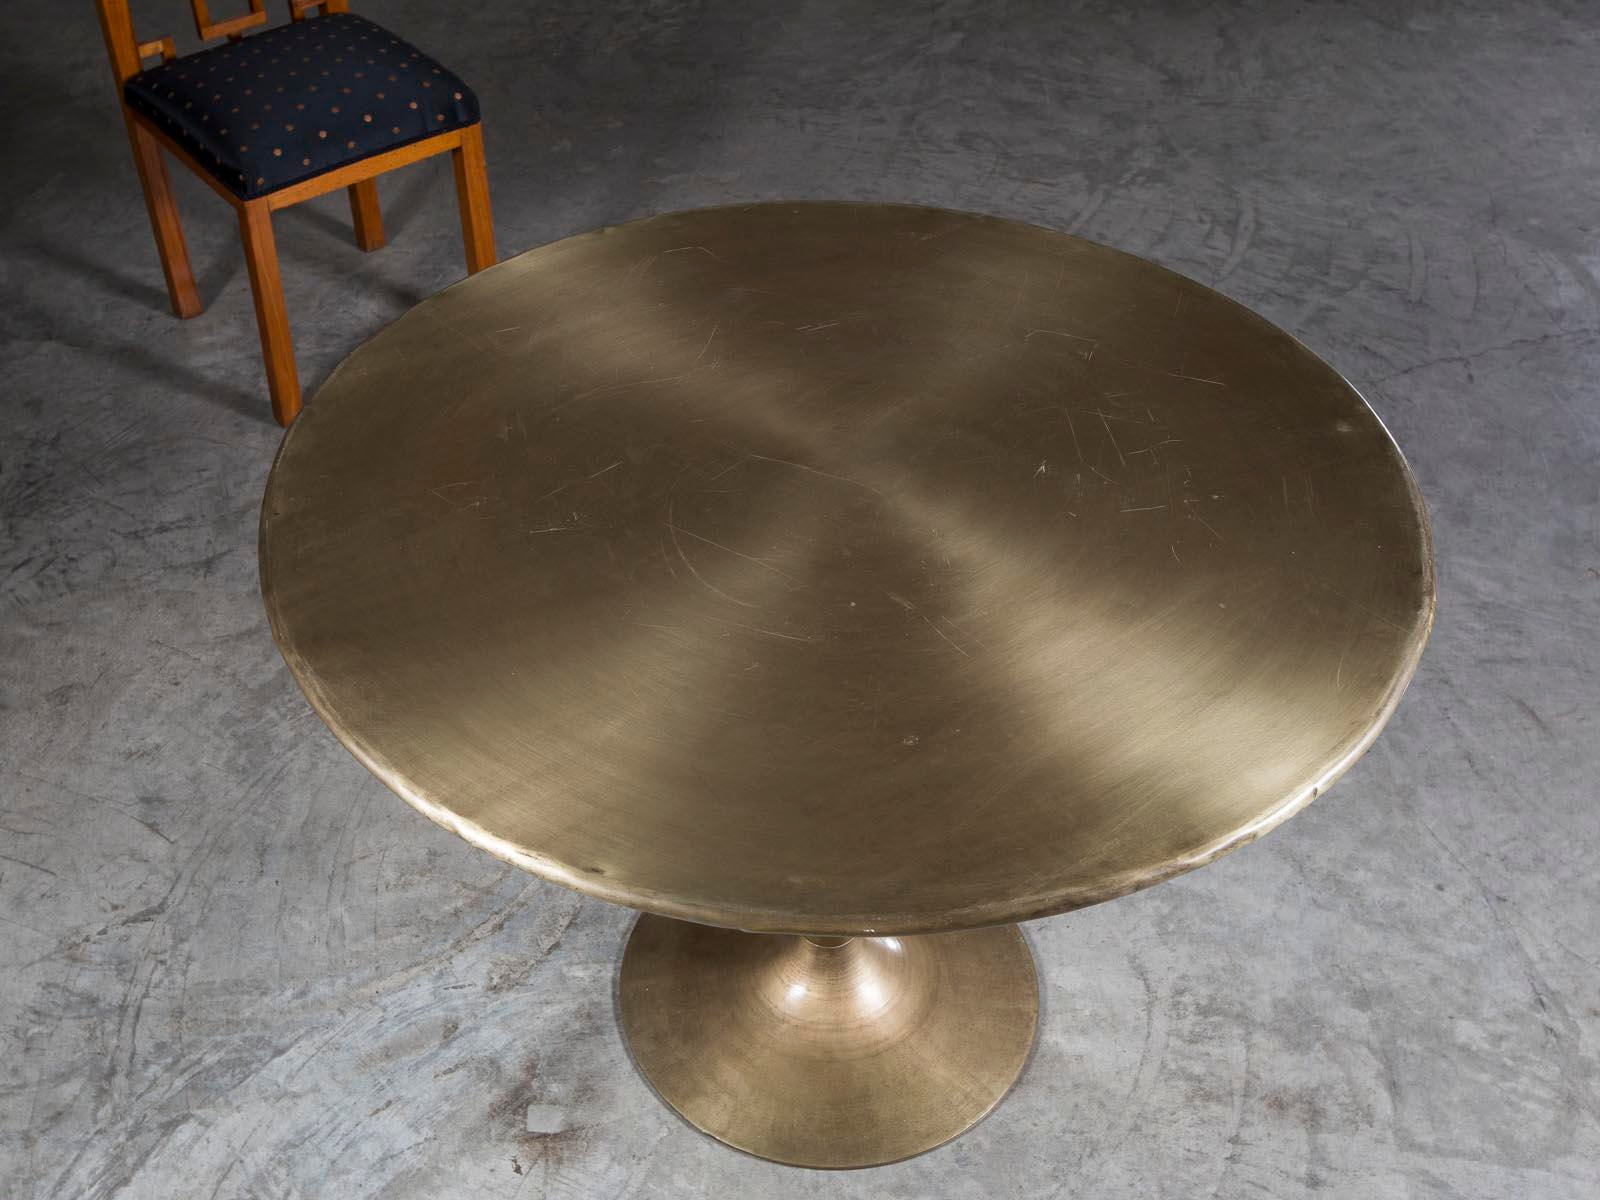 A Striking Round Brass Saarinen Style Dining Table From Holland. The  Elegant Restraint Exercised By